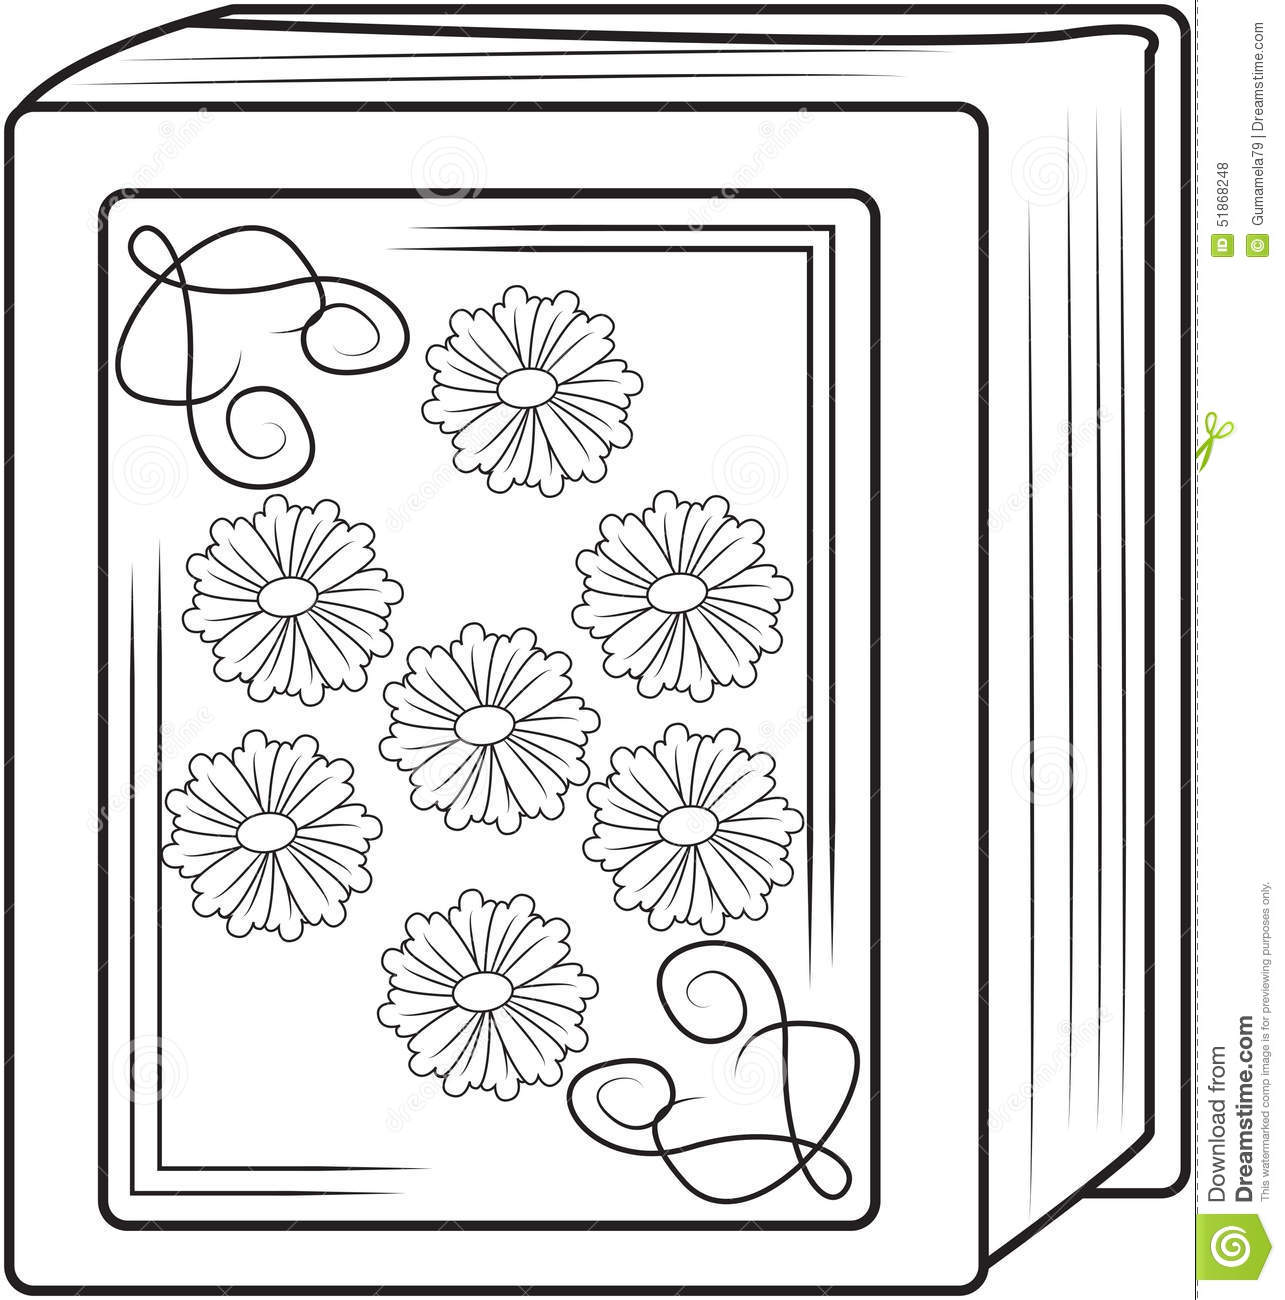 old book coloring page stock illustration image 51868248